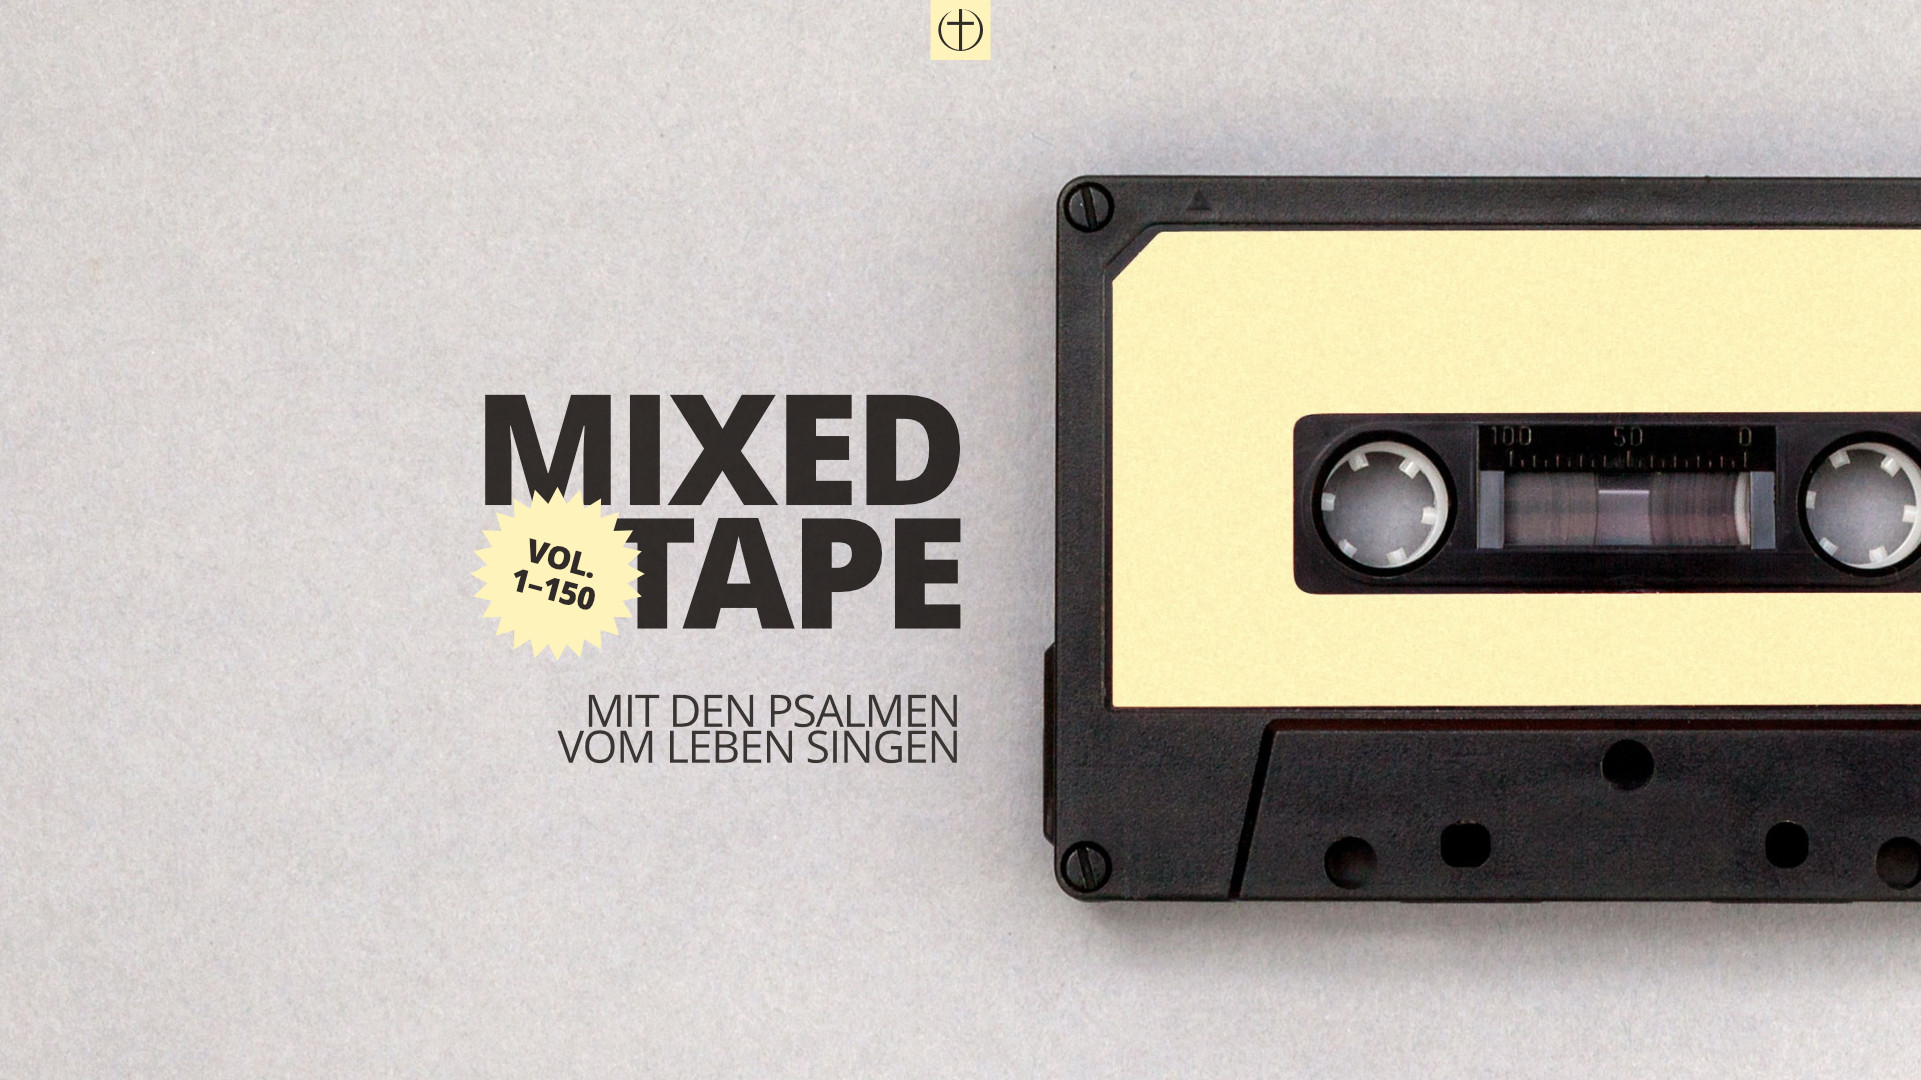 MIXED TAPE: Vol. 103